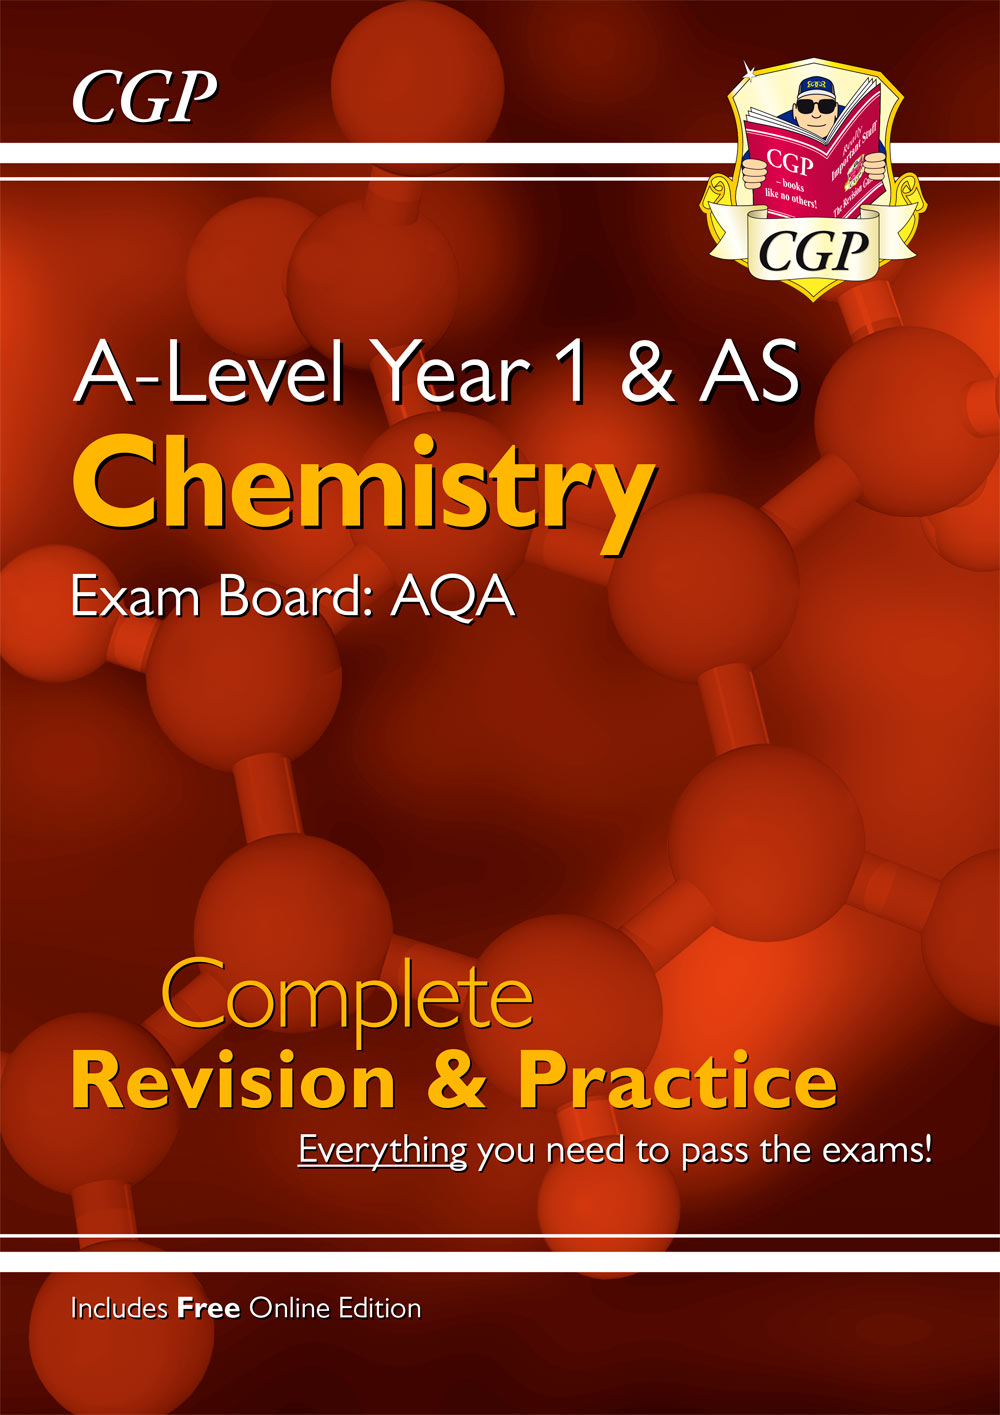 CAR54 - A-Level Chemistry: AQA Year 1 & AS Complete Revision & Practice with Online Edition